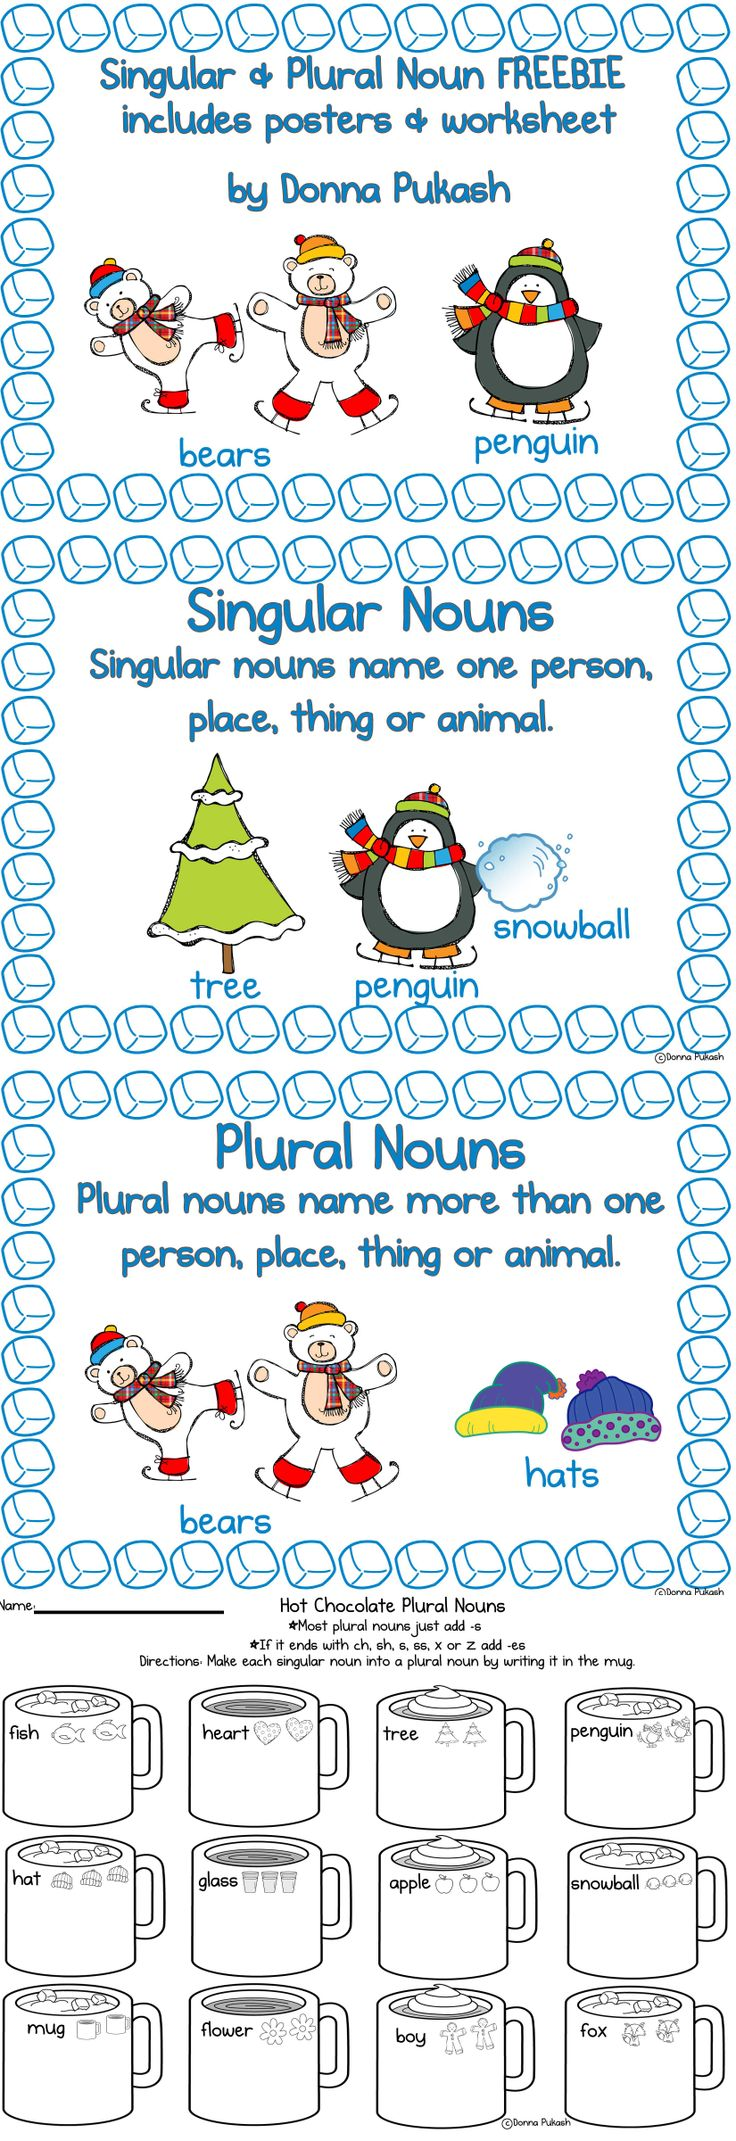 Workbooks plural rules worksheets : Best 25+ Singular and plural nouns ideas on Pinterest | Plural ...